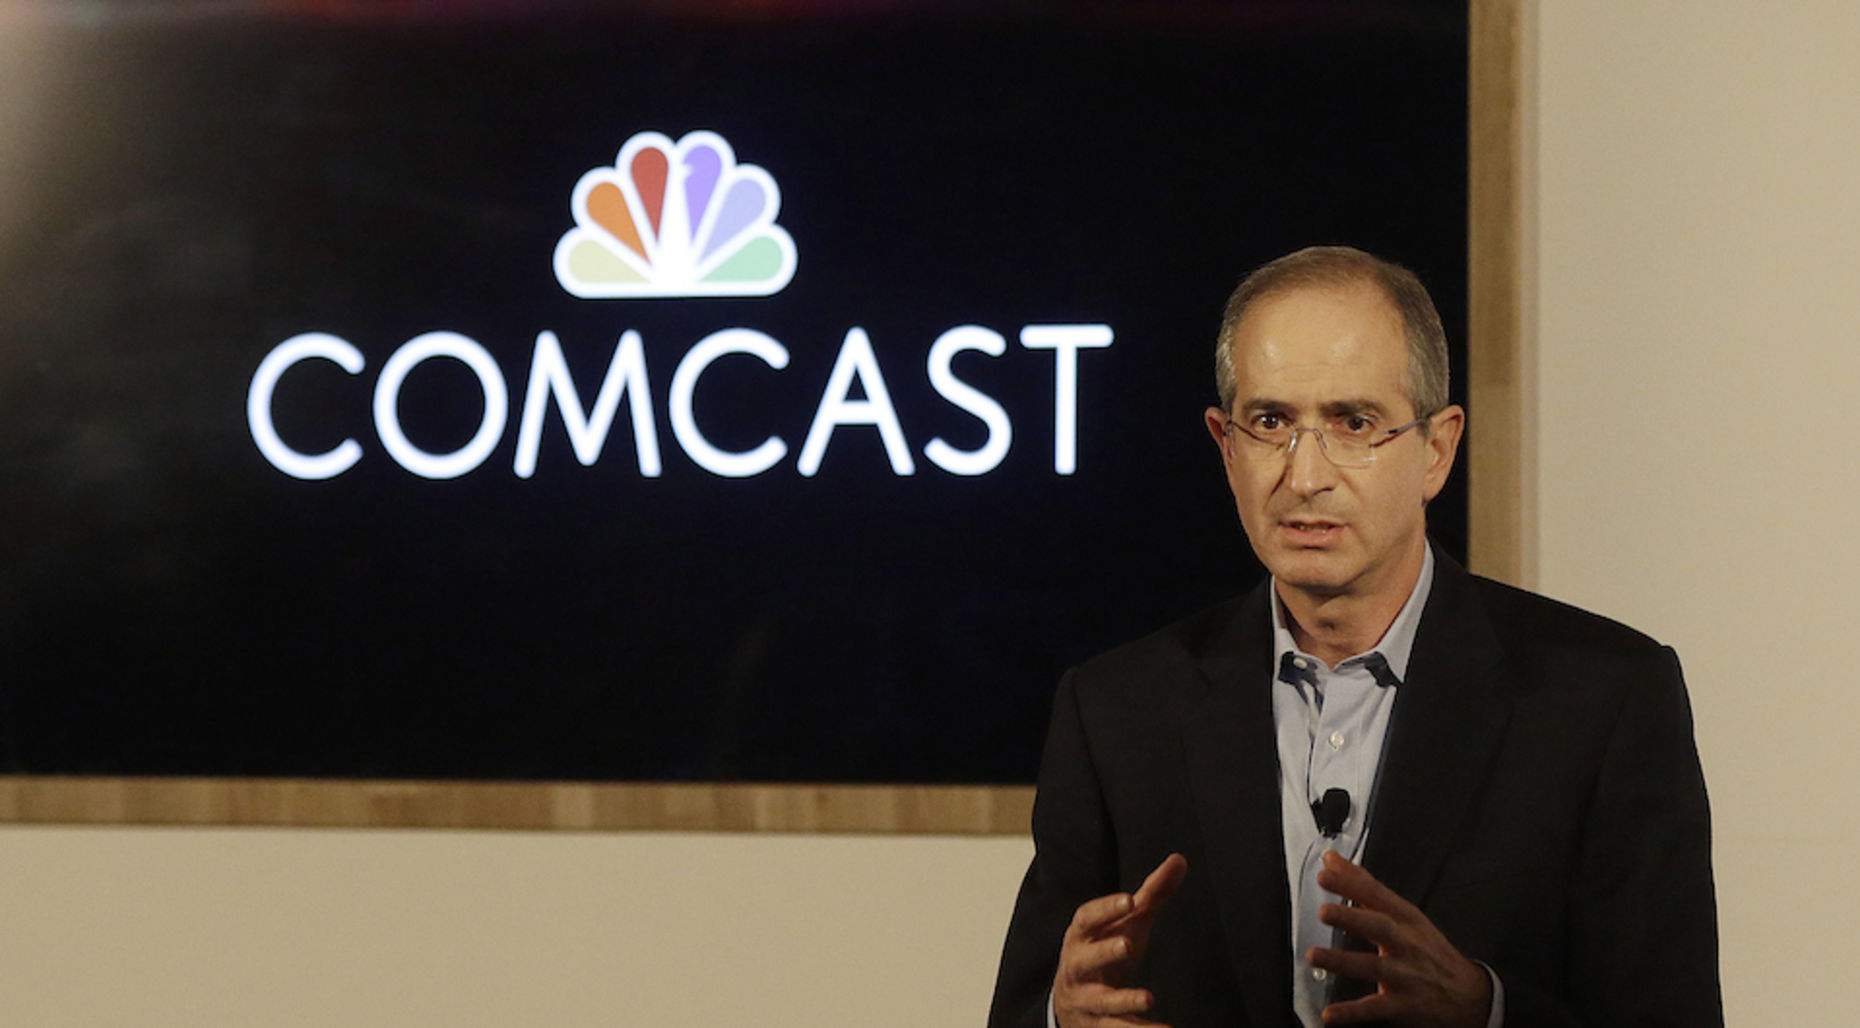 Comcast CEO Brian Roberts in San Francisco this month. Photo by Associated Press.